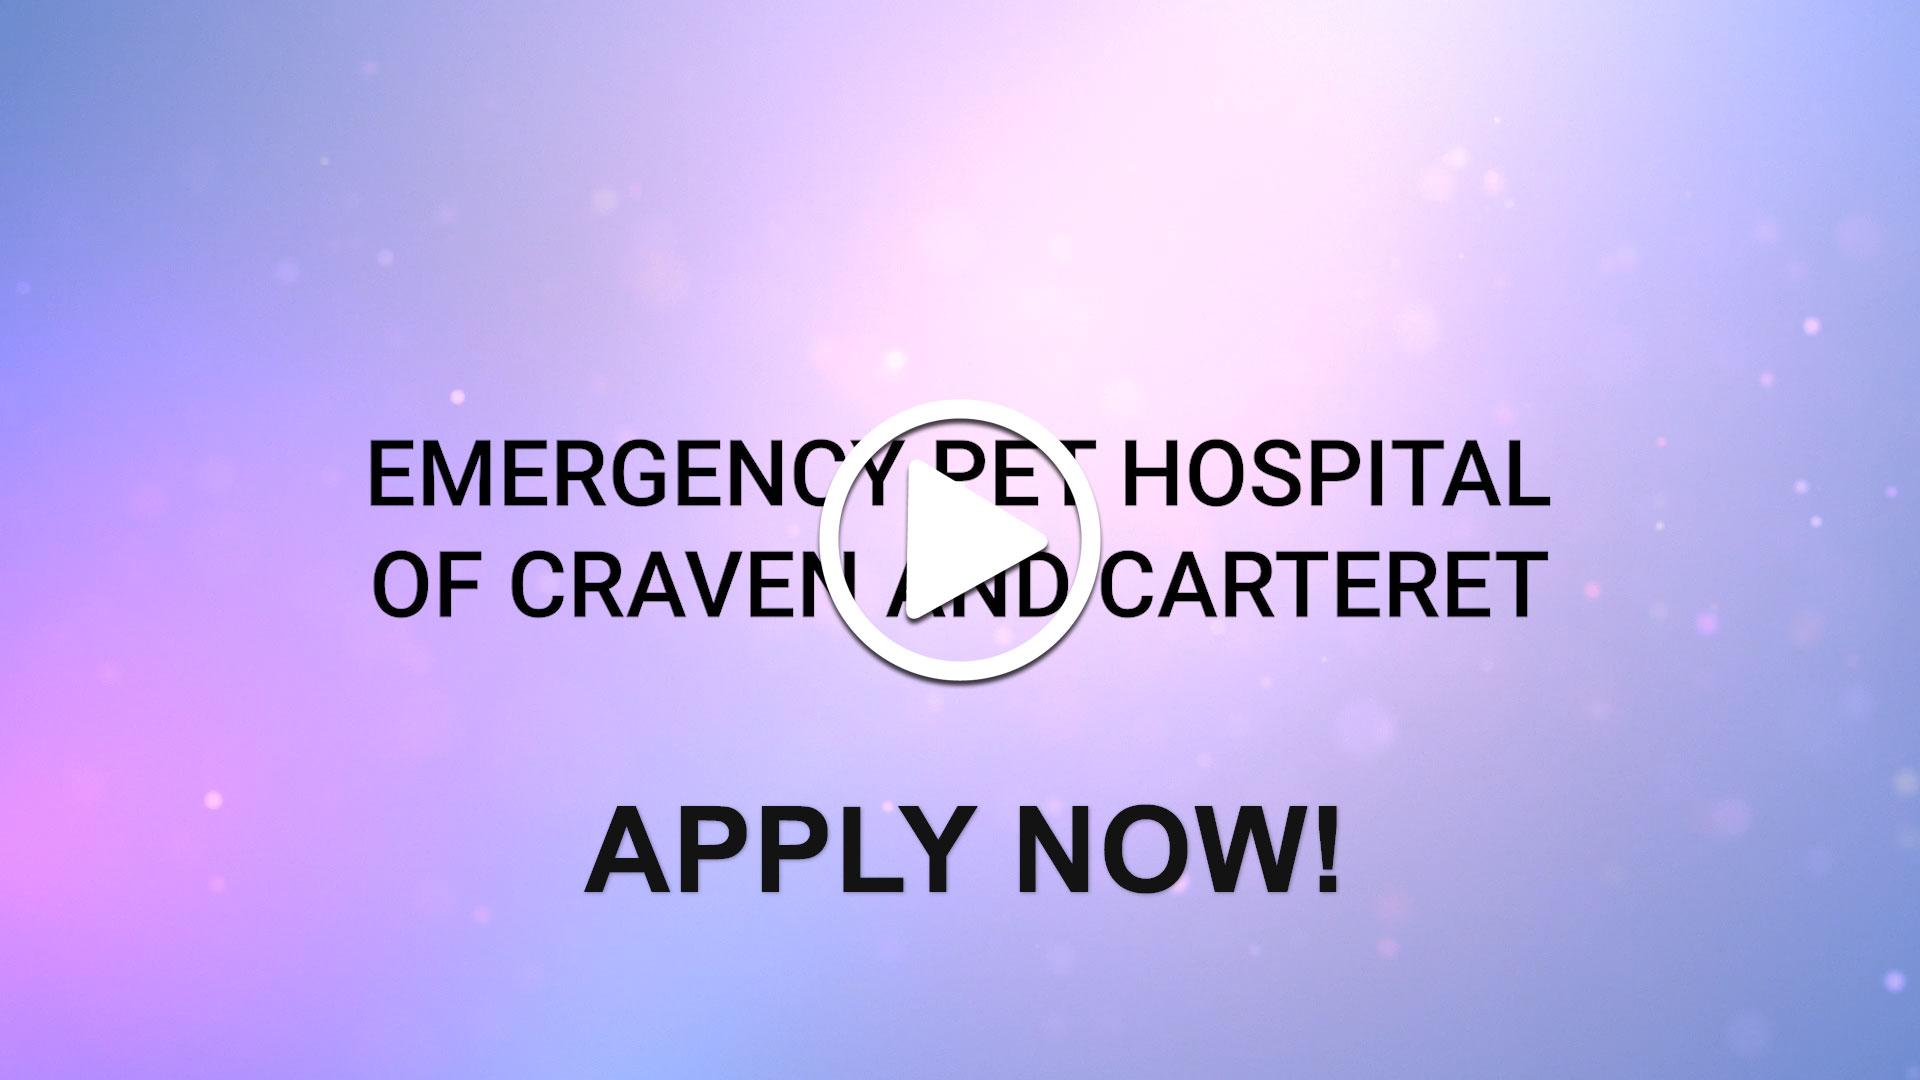 Watch our careers video for available job opening Part time or Full Time Emergency Clinician in Havelock, NC, USA